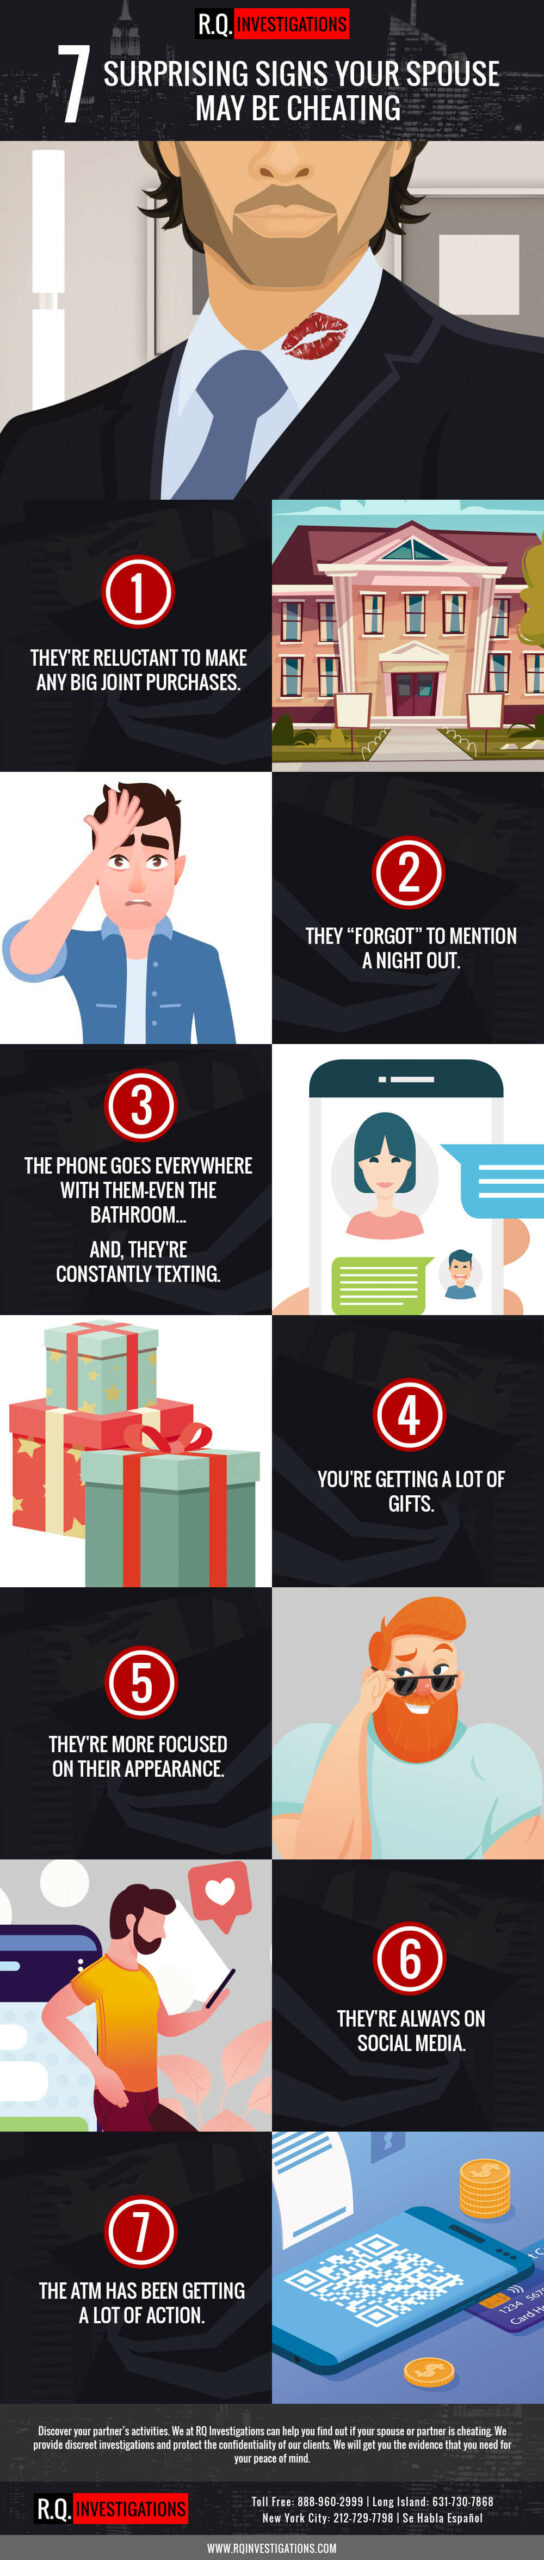 7 Surprising Signs Your Spouse-May Be Cheating RQ Private-Investigations Infographic